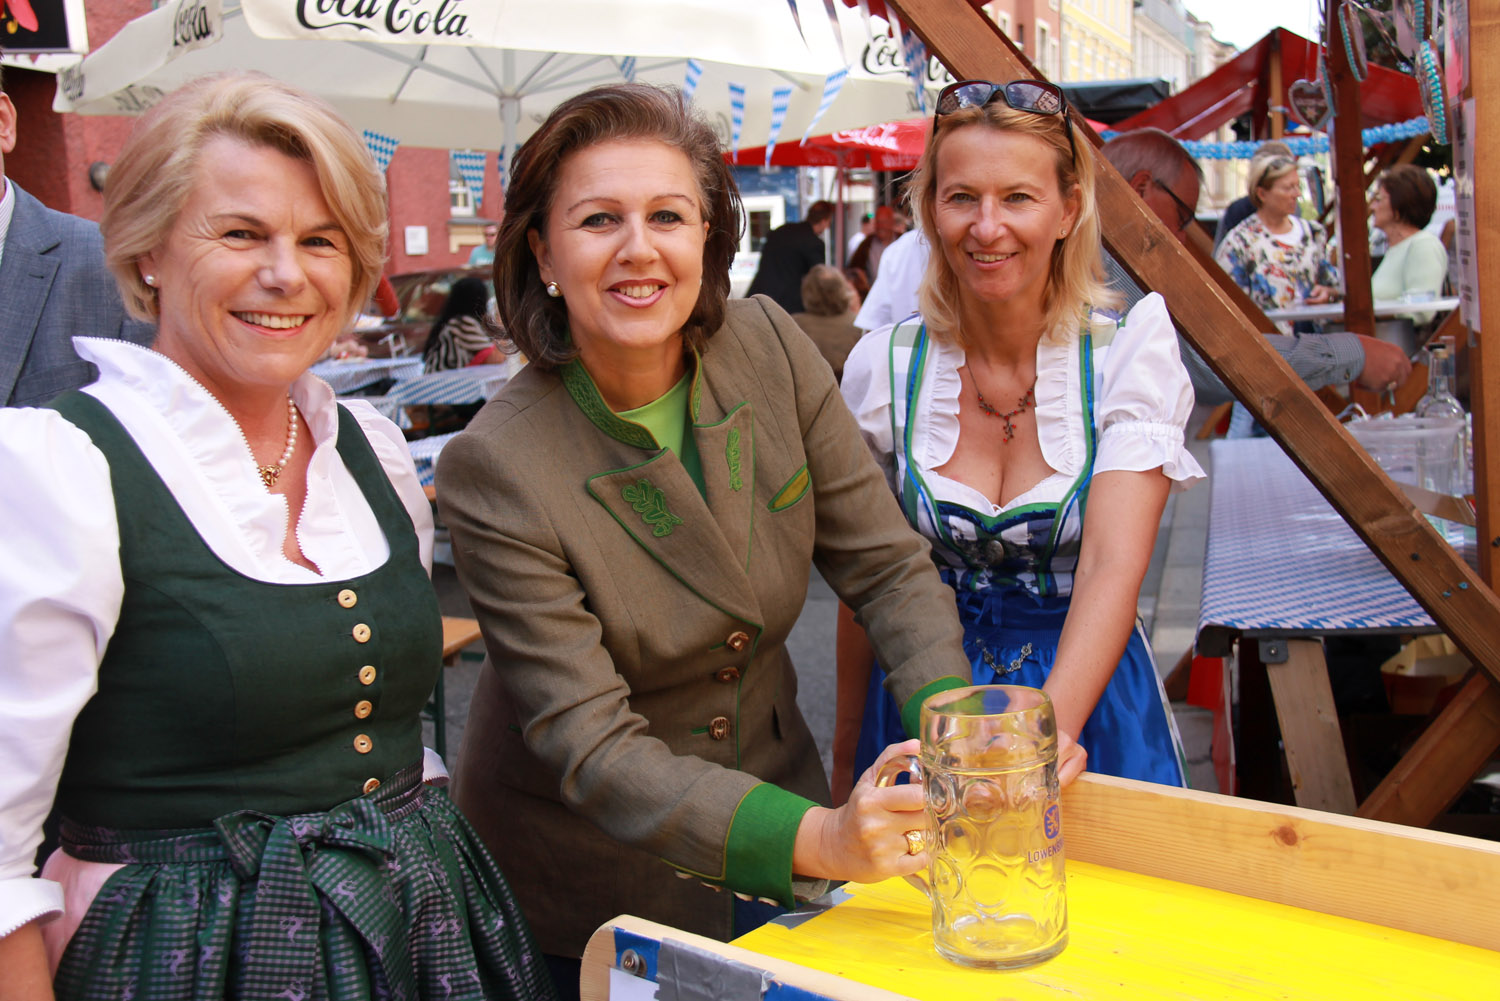 Das Oktoberfest des Marketingkreis Wilten West 2014 - 020